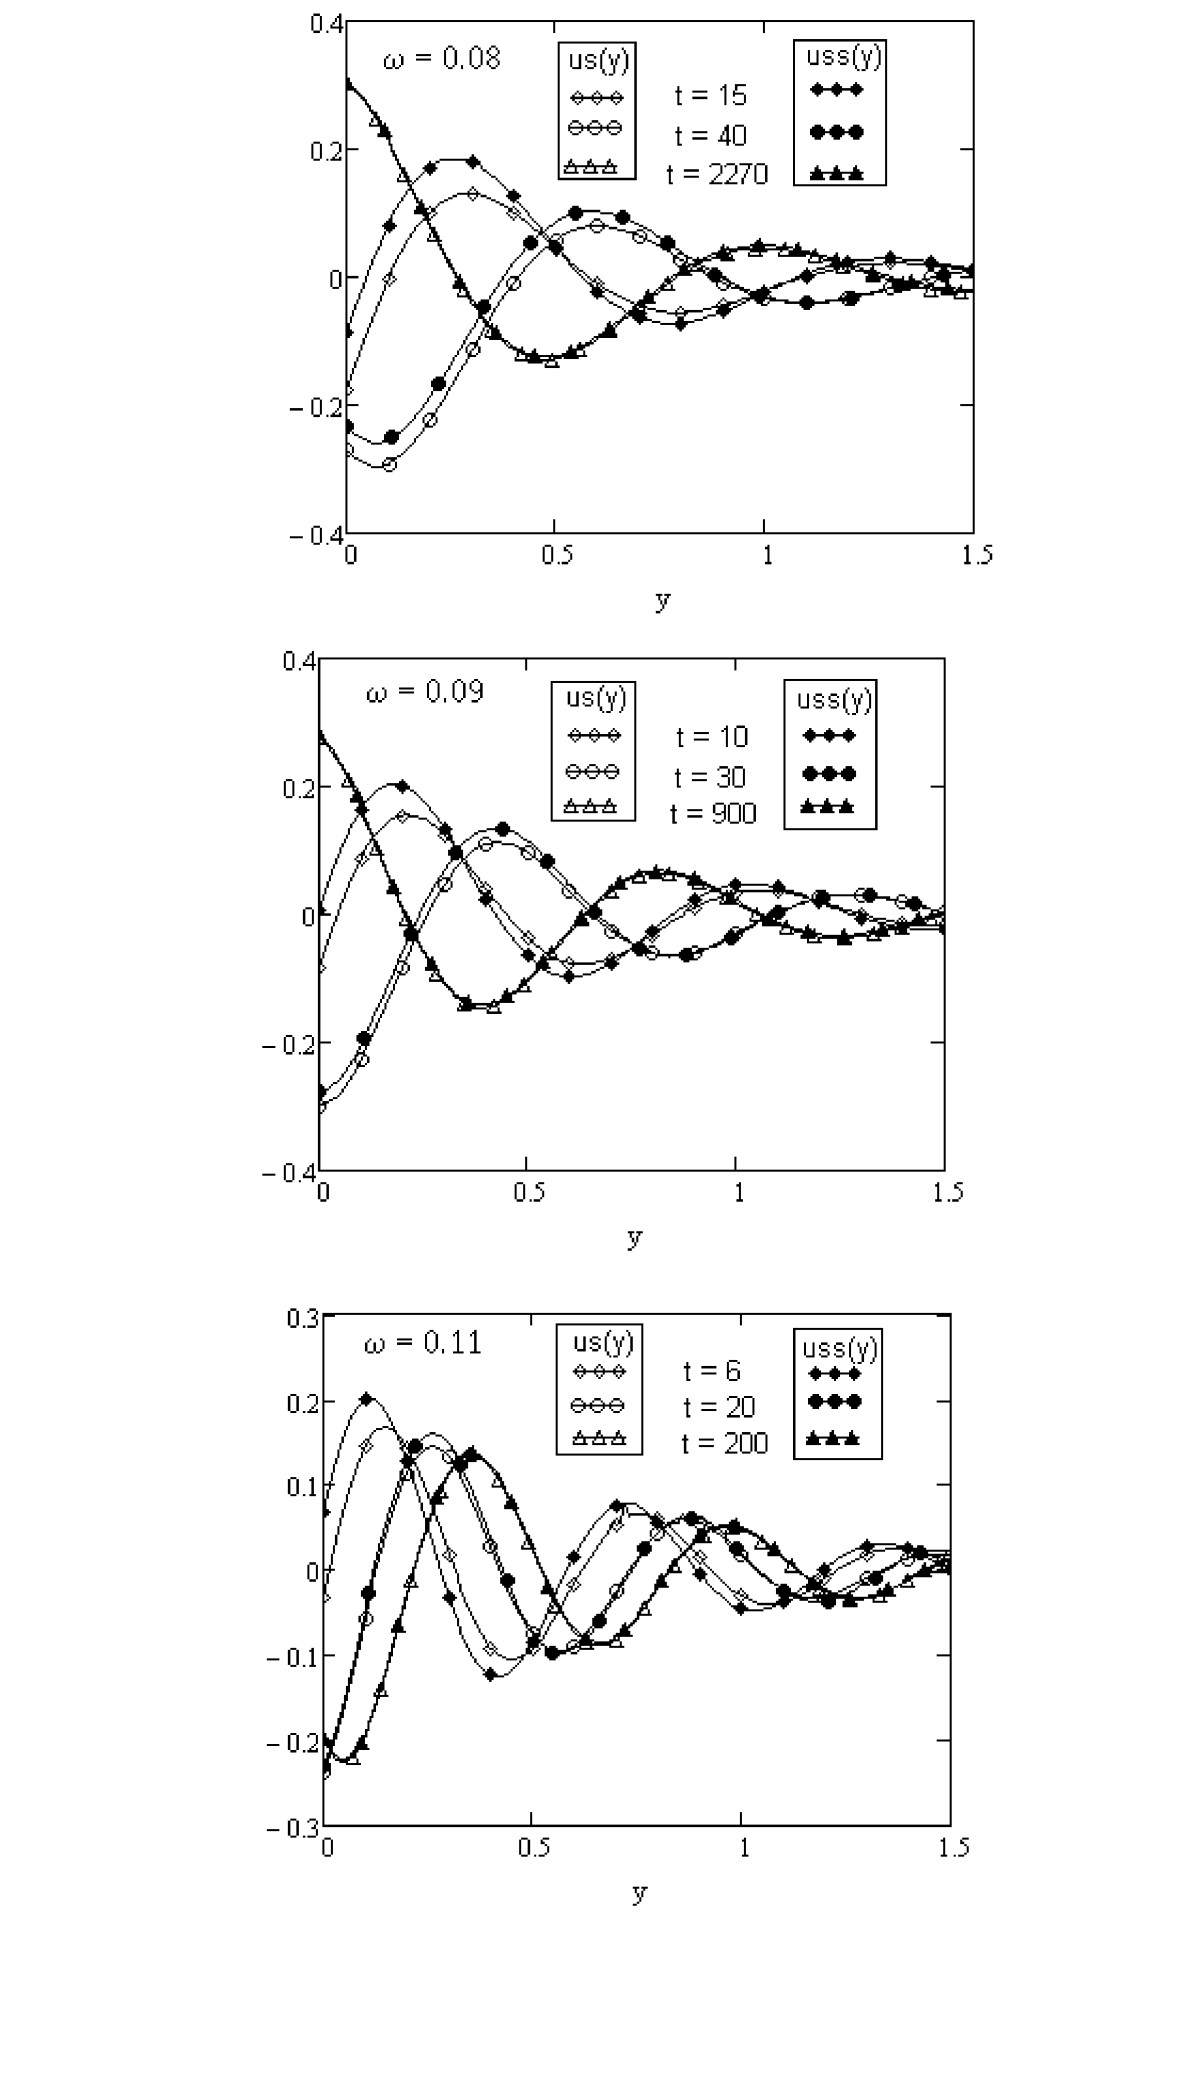 https://static-content.springer.com/image/art%3A10.1186%2F1687-2770-2012-48/MediaObjects/13661_2011_Article_139_Fig1_HTML.jpg